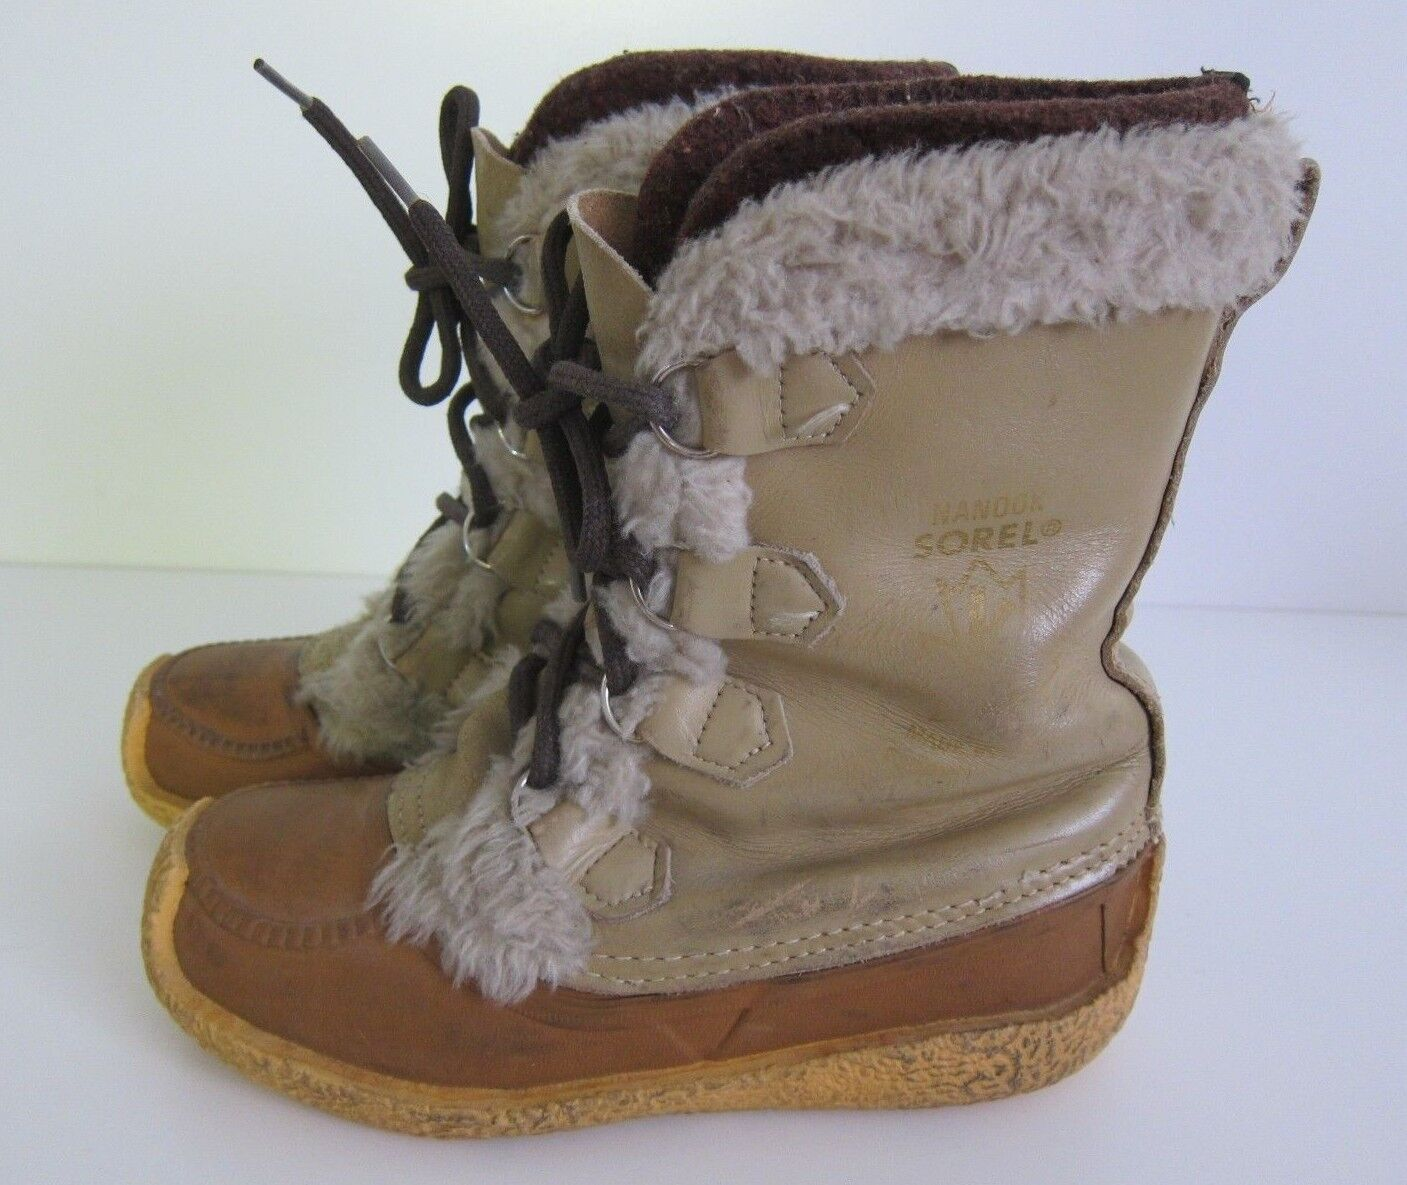 Vintage Sorel Made In Canada Wool Leather Rubber Winter Snow Boot Size 7